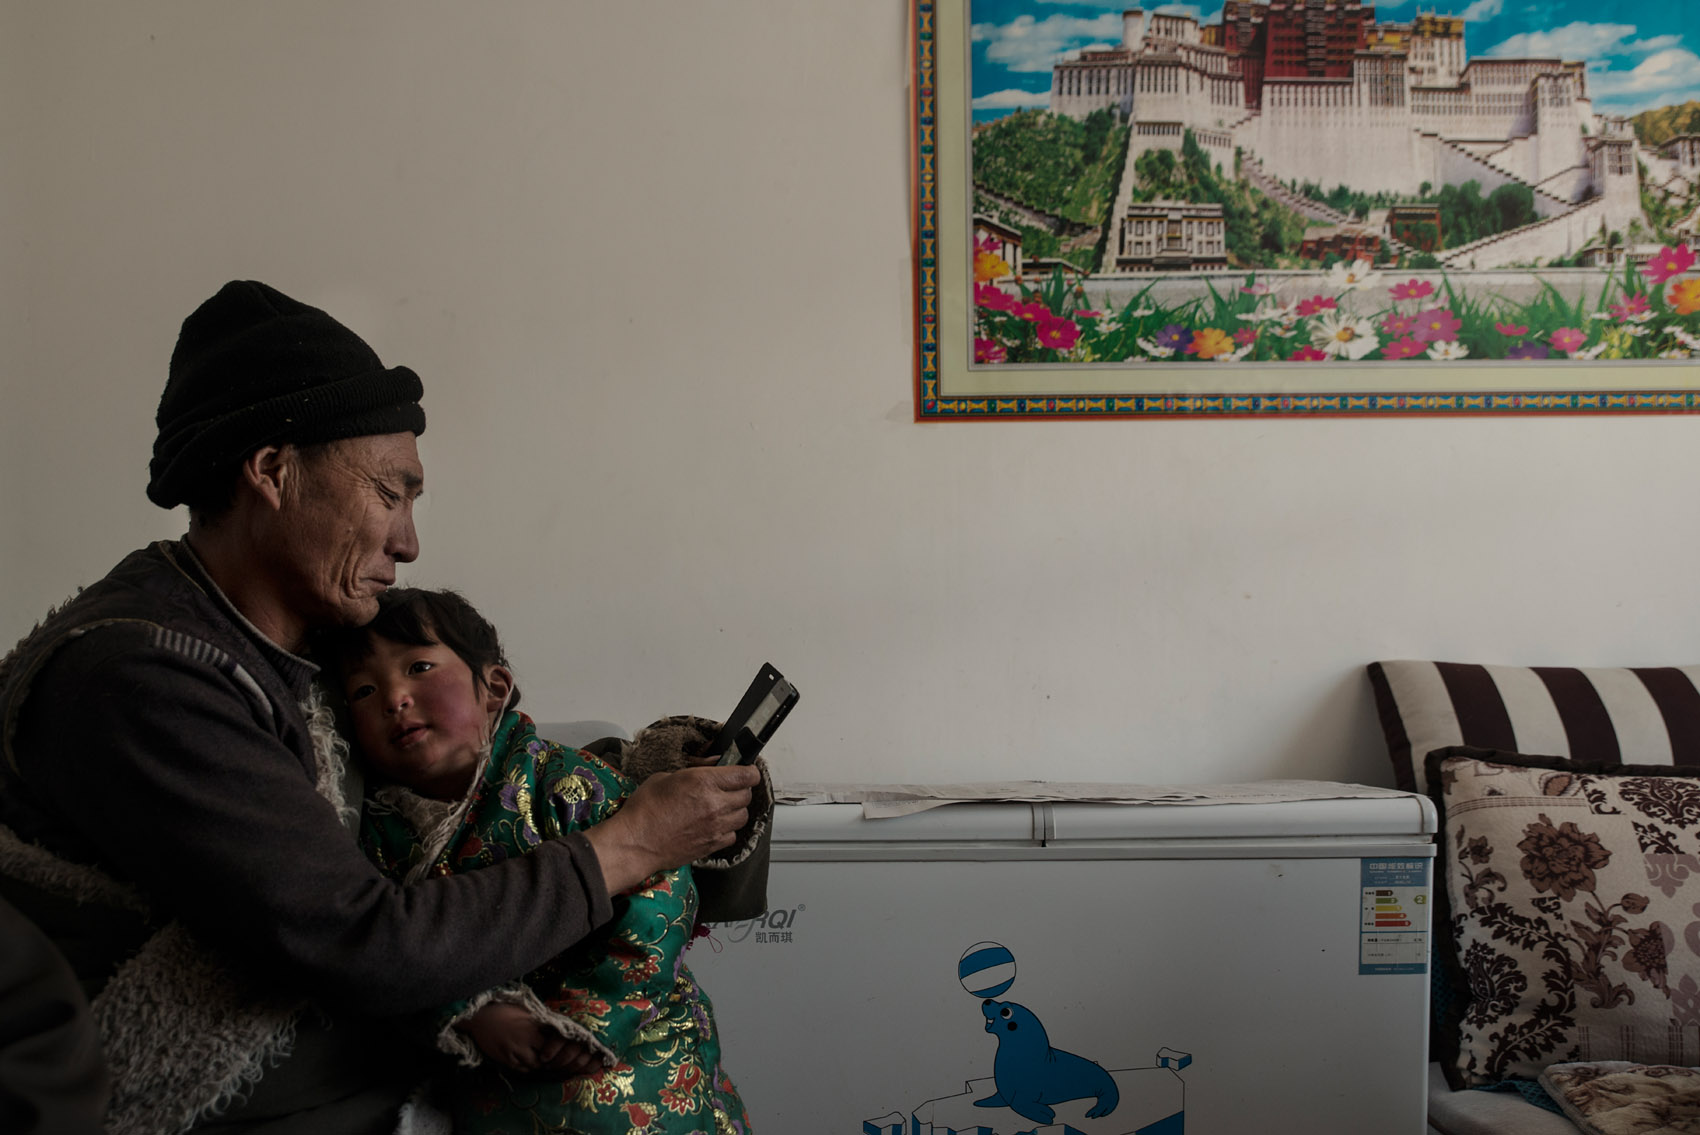 A Tibetan nomad, holding his granddaughter in the house they recently moved in. They bought the house with government subsidies. Although featuring many amenities of modern living, satellite TV, washing machine, fridge..etc, the owners complain about the poor quality of the construction and point at many items already damaged just after a few weeks of occupancy. This former nomad has kept the family tent and plans to use it for a restaurant catering to tourists visiting the region. As nomads have to give up pastoralism, many see tourism as an alternative source of income.